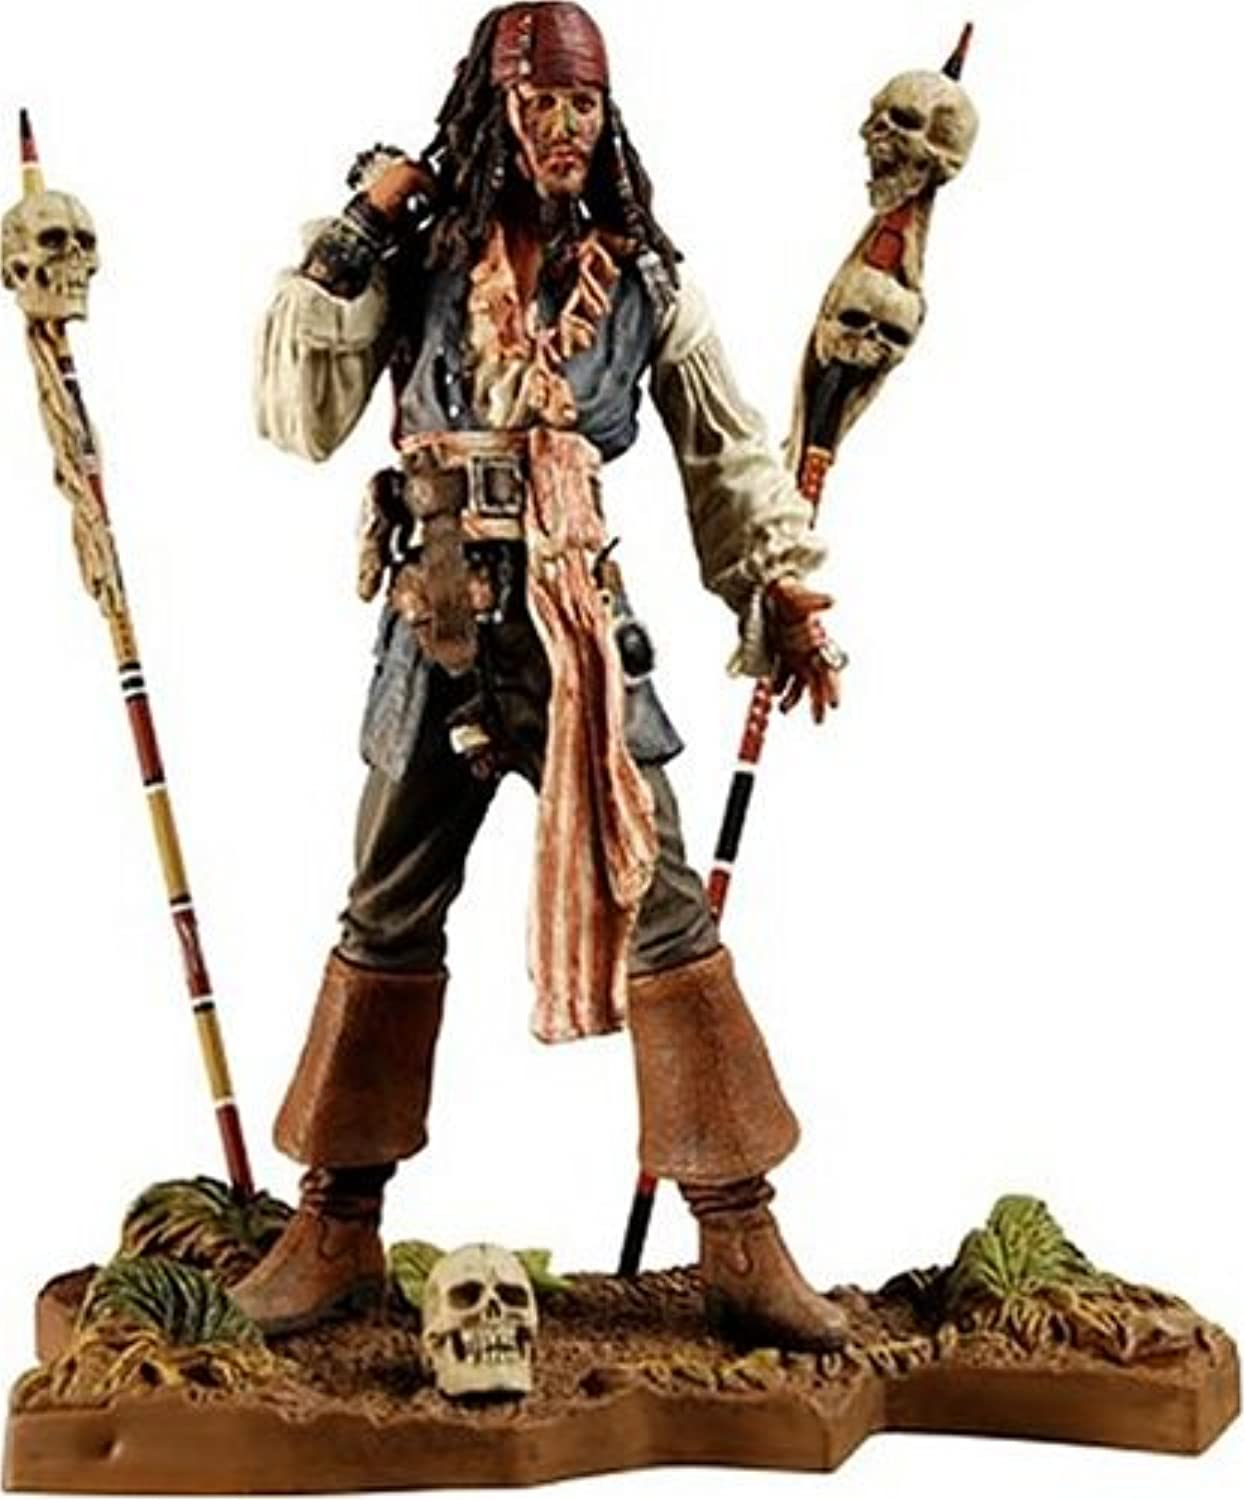 Jack Sparrow (cannibal) from Dead Mans Chest